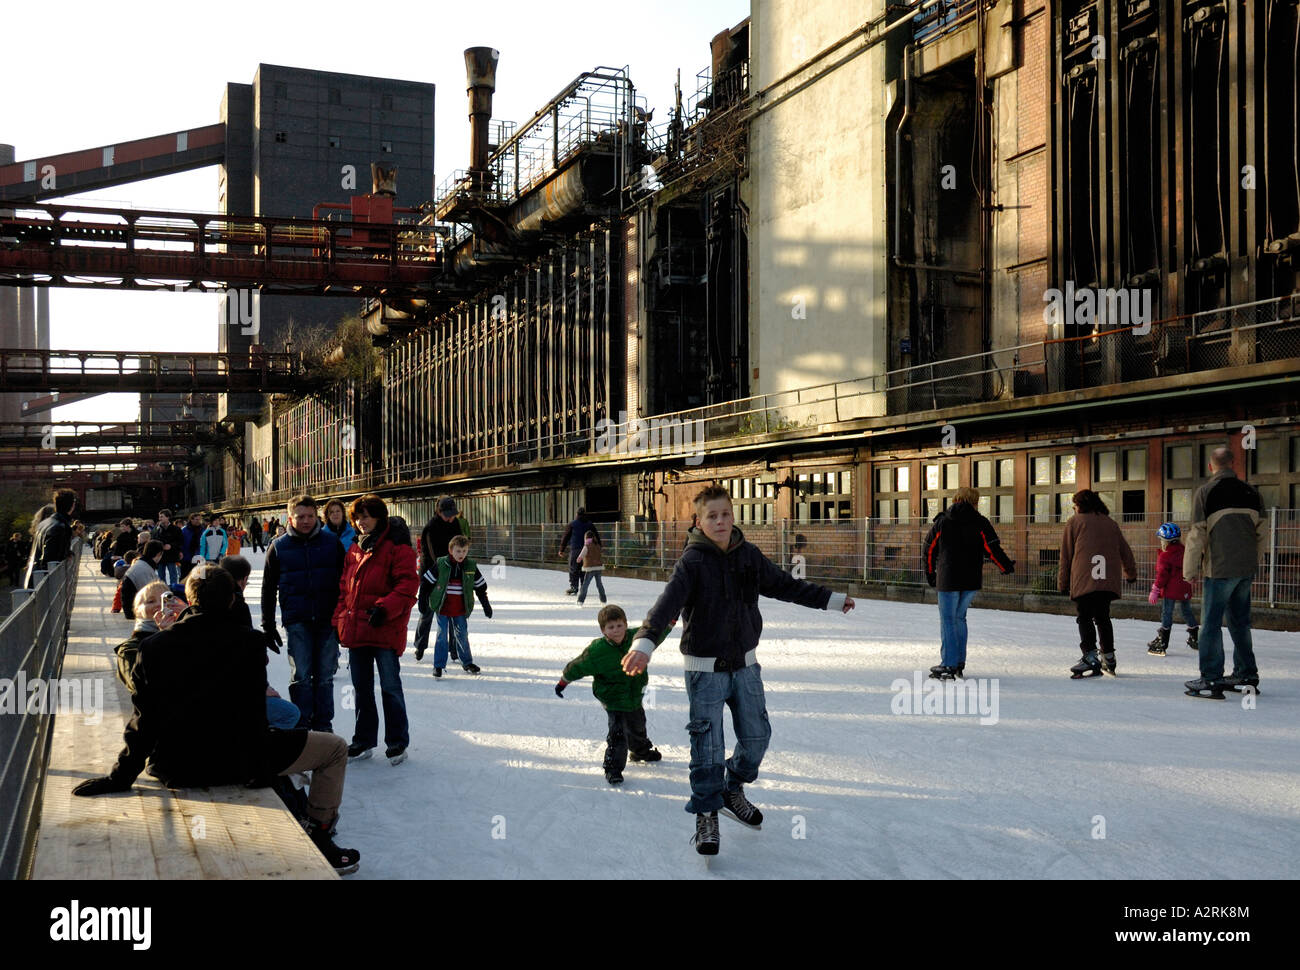 Ice skating at the UNESCO world heritage site Zollverein, Essen, Germany. - Stock Image